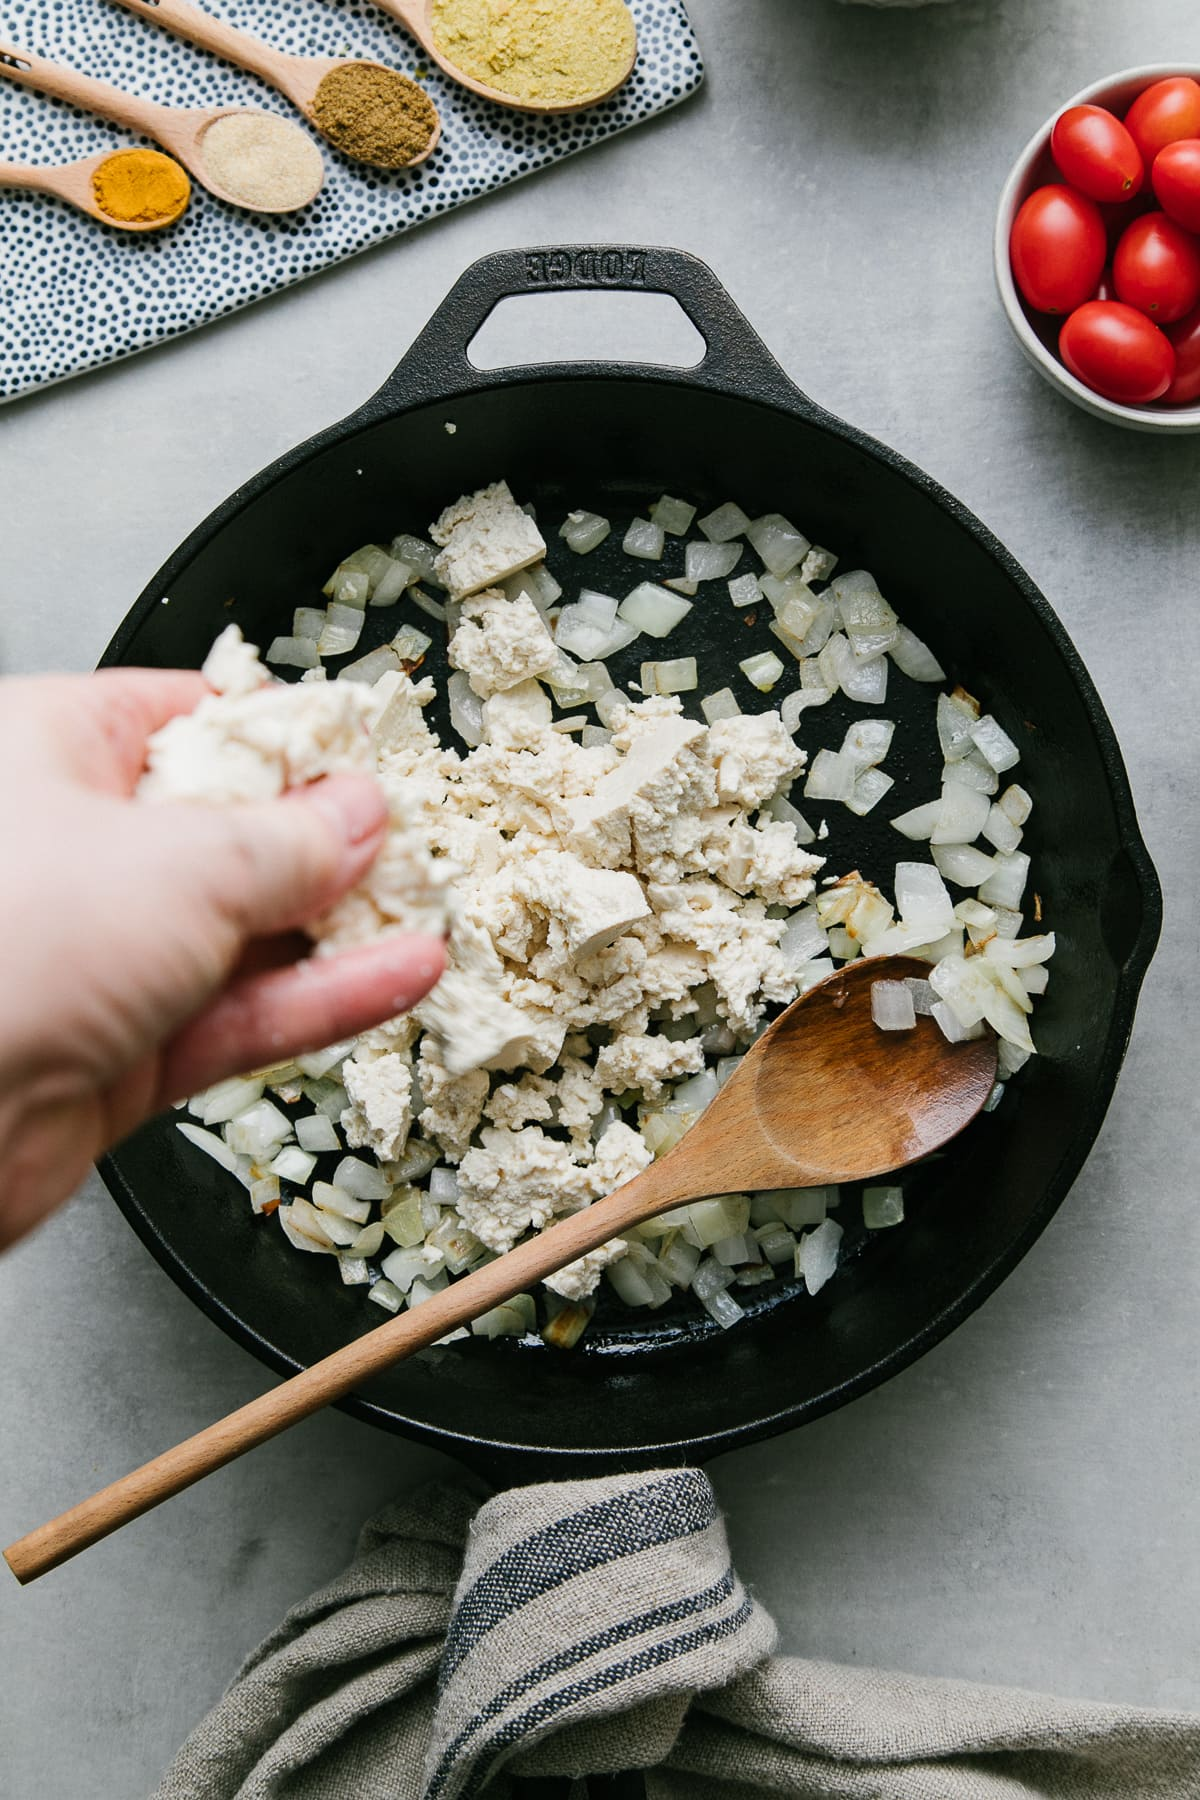 top down view of tofu being crumbled between fingers while adding it to a skillet with onions.